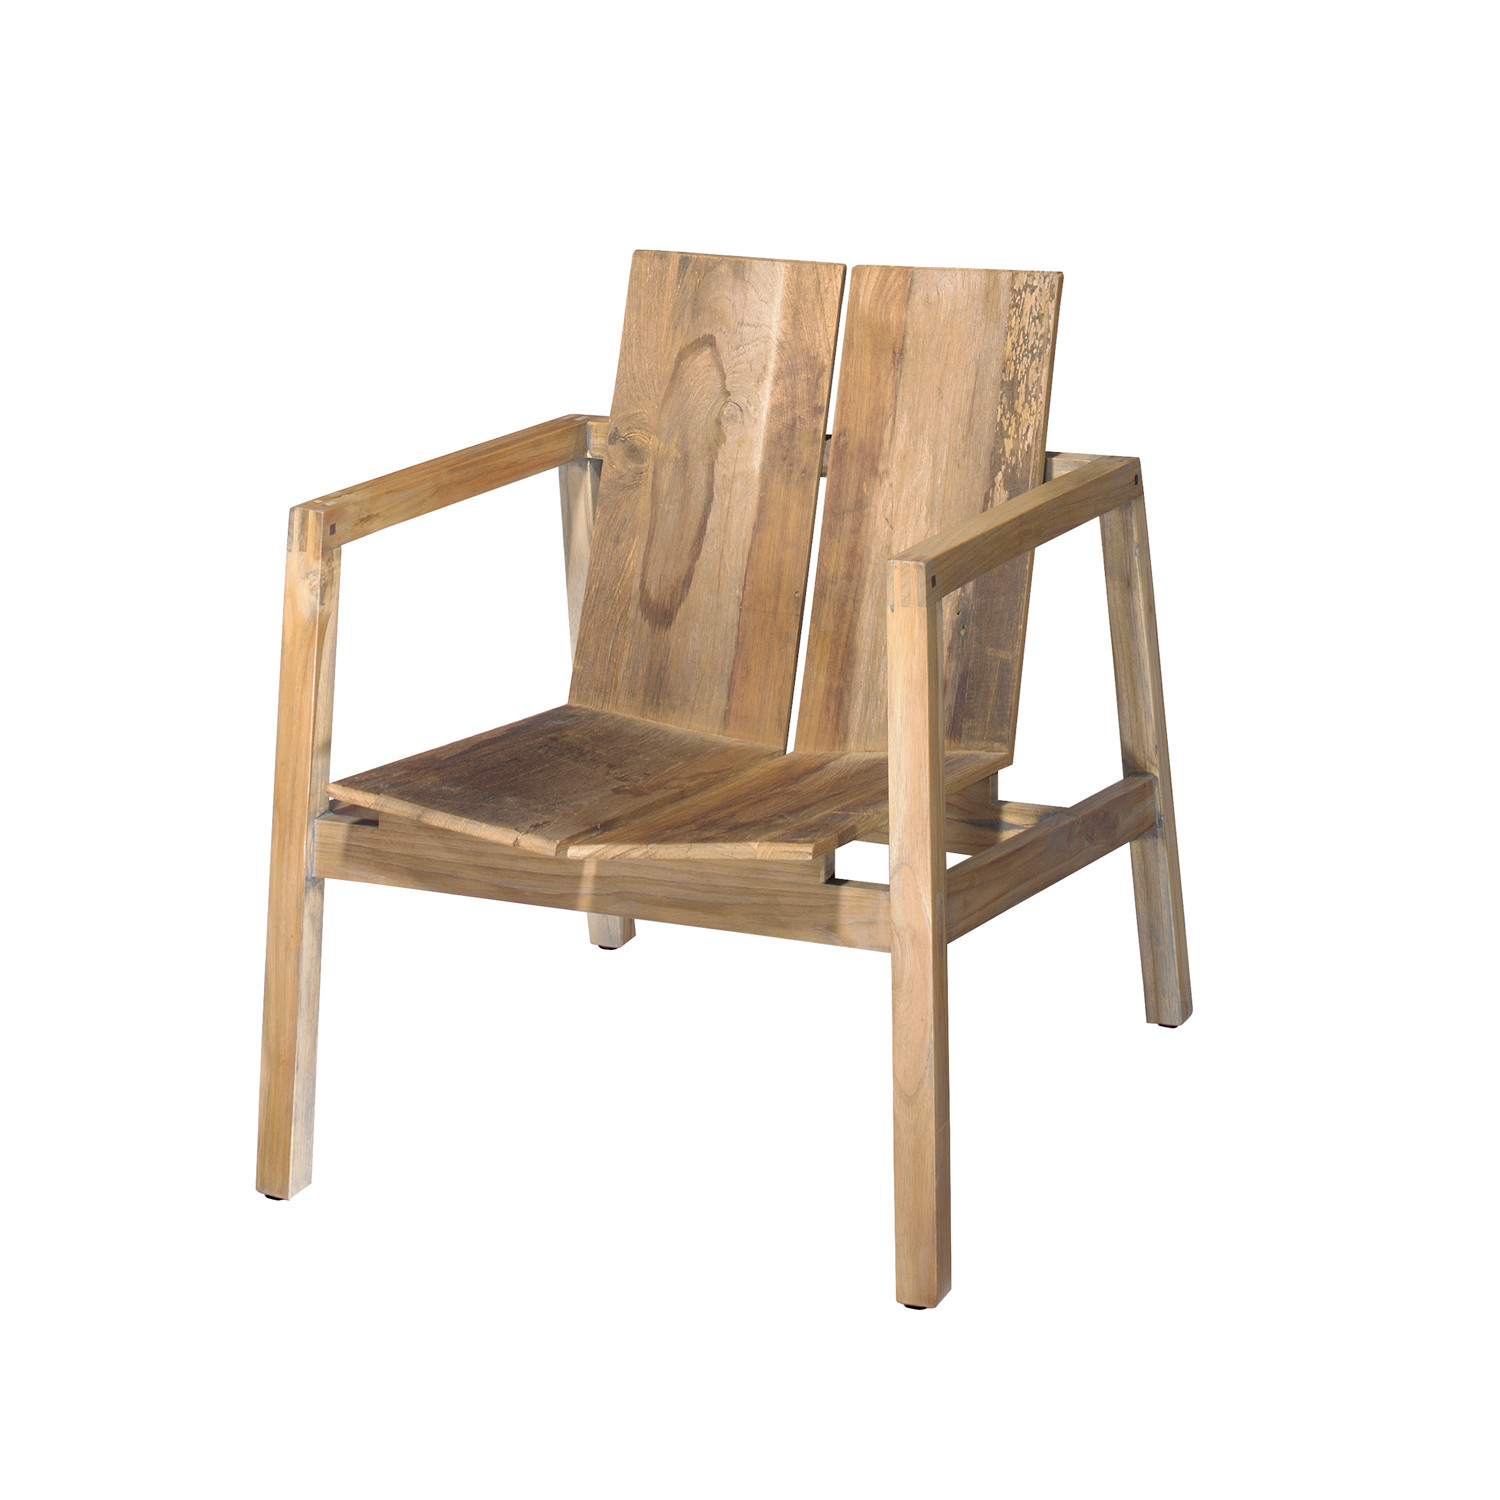 Amazing photo of Old Wood Arm Chair Urbia Imports Touch of Modern with #996632 color and 1500x1500 pixels